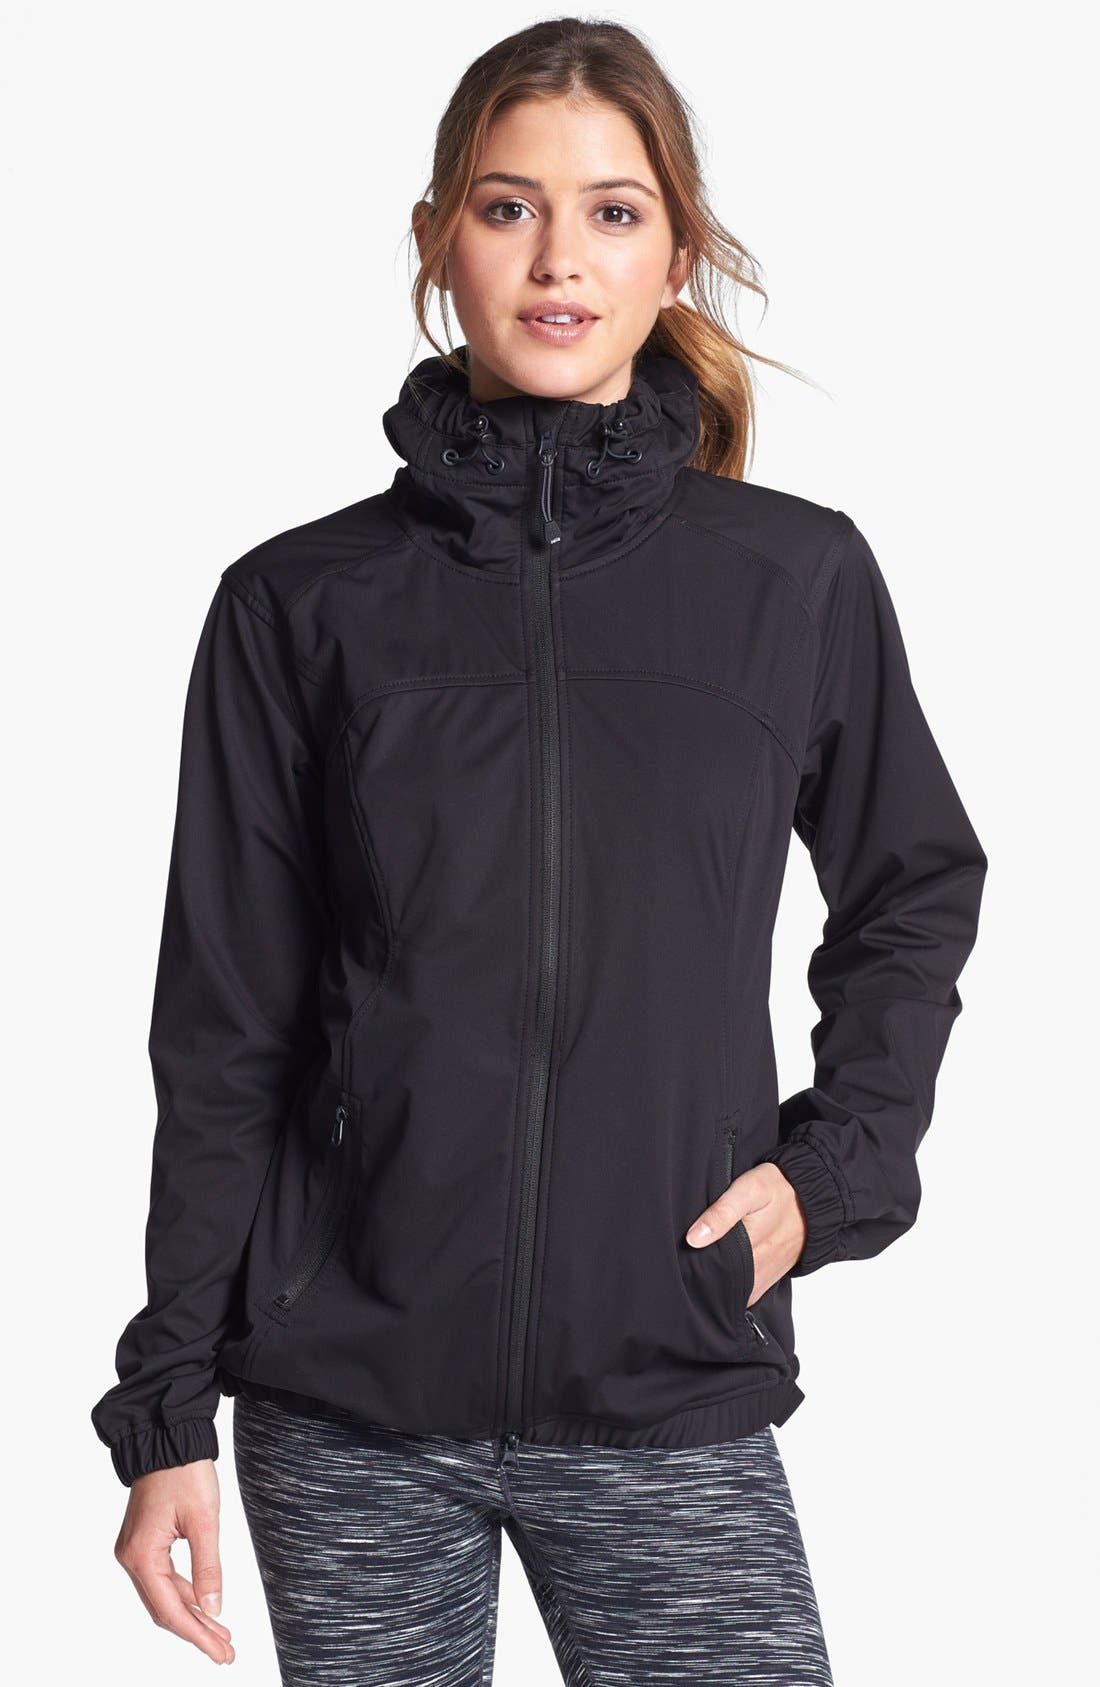 Alternate Image 1 Selected - Zella 'Luxe' Rain Jacket